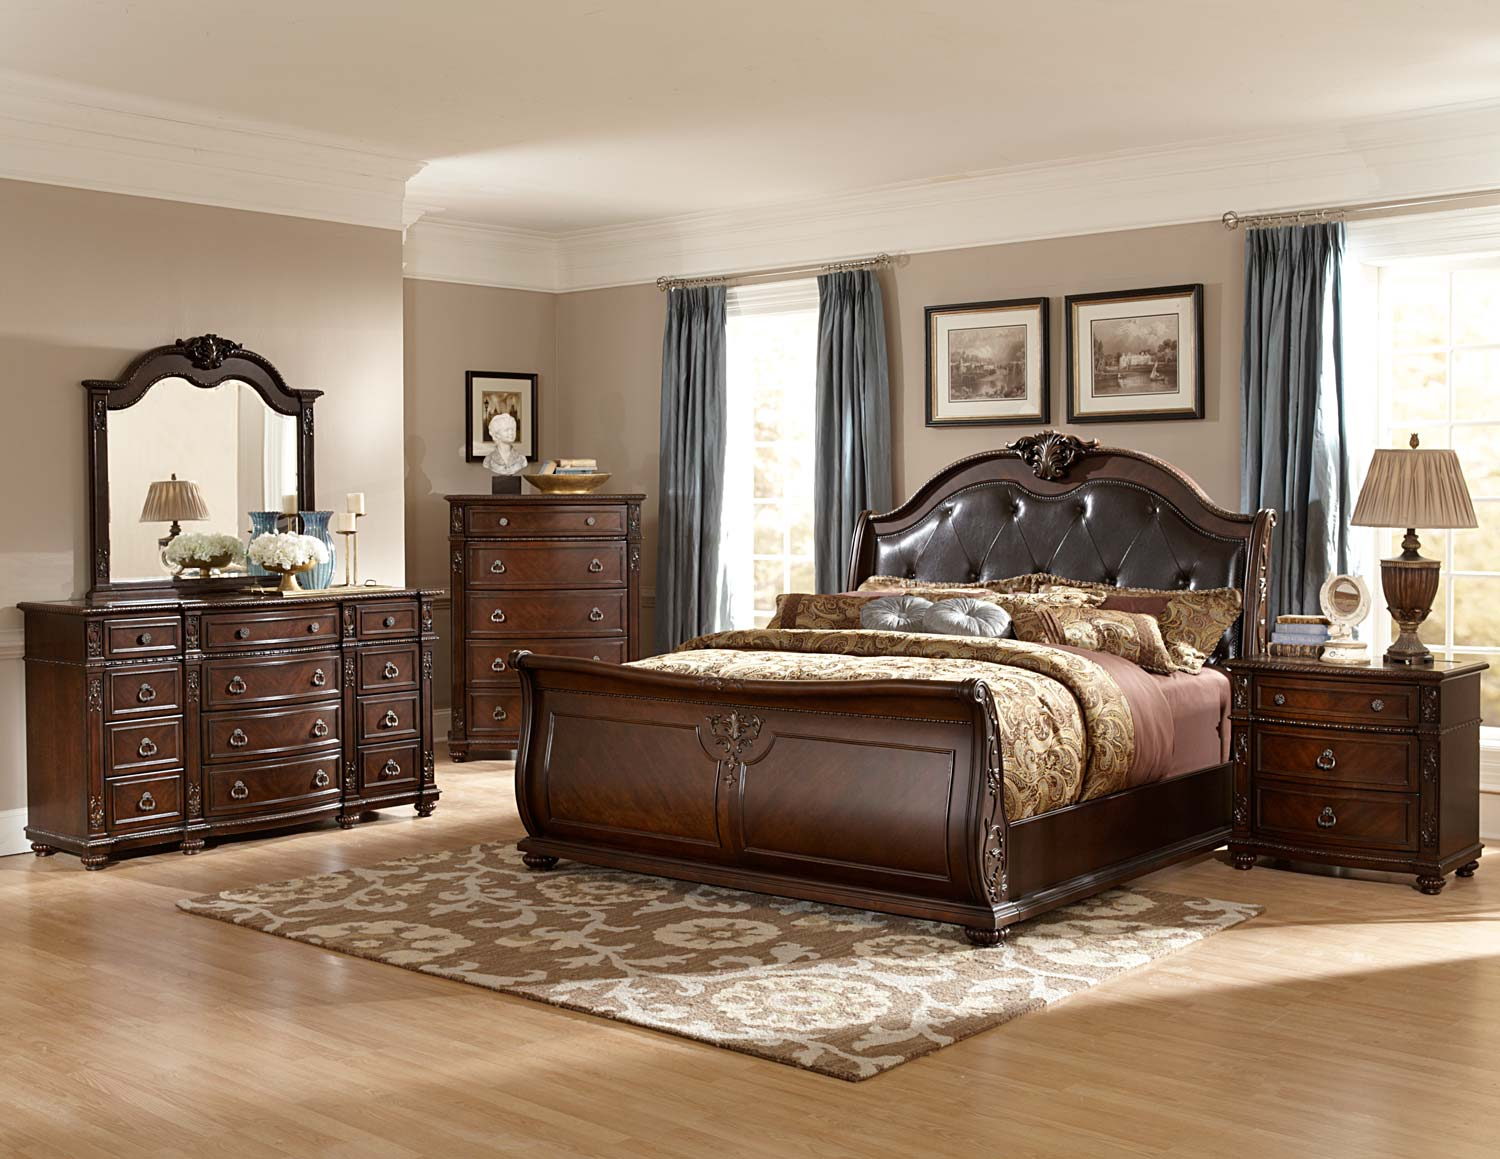 Homelegance Hillcrest Manor Sleigh Bedroom Set  Cherry B2169SLBEDSET at Homelementcom